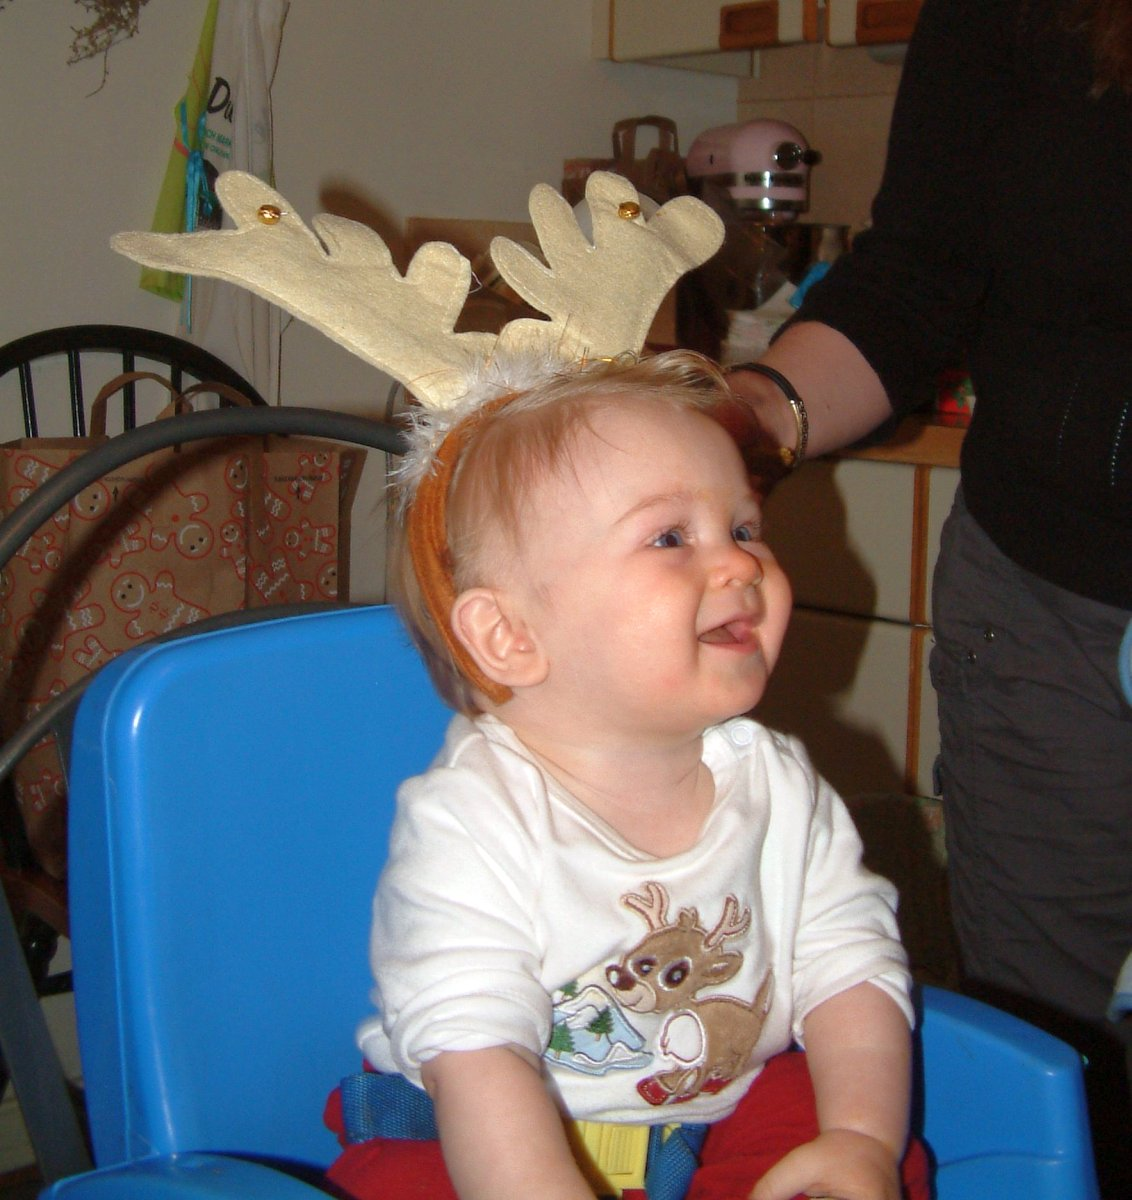 Lil' Dylan with his reindeer antlers